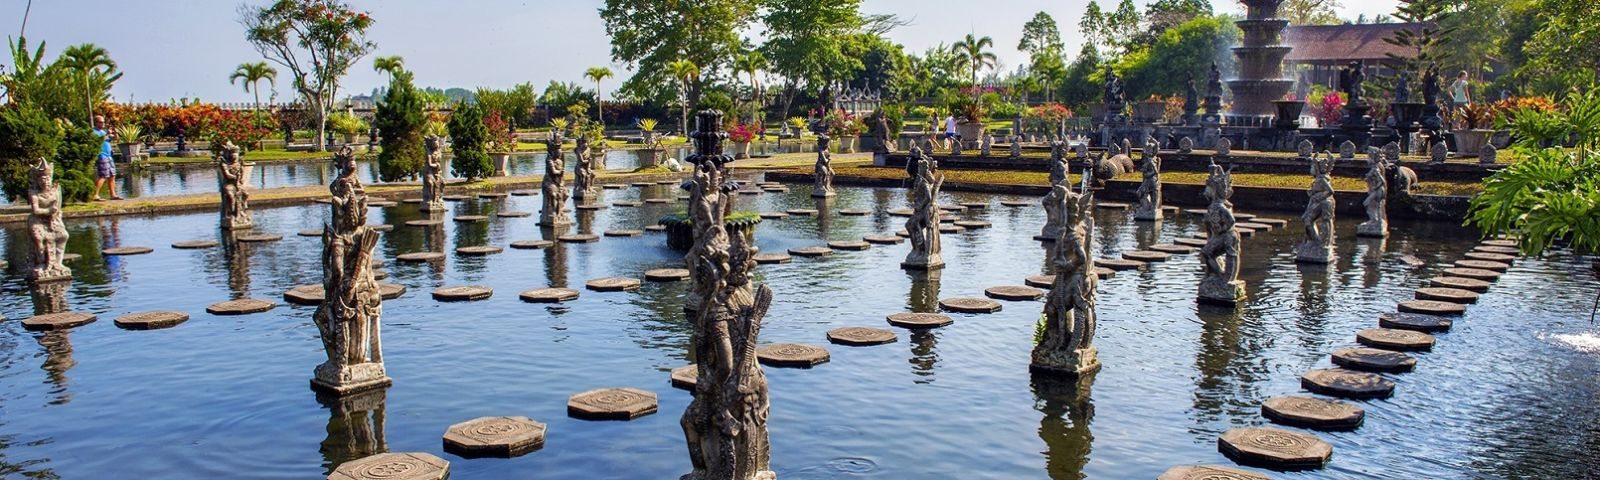 Tirtagangga,, Bali - Things to do in Indonesia